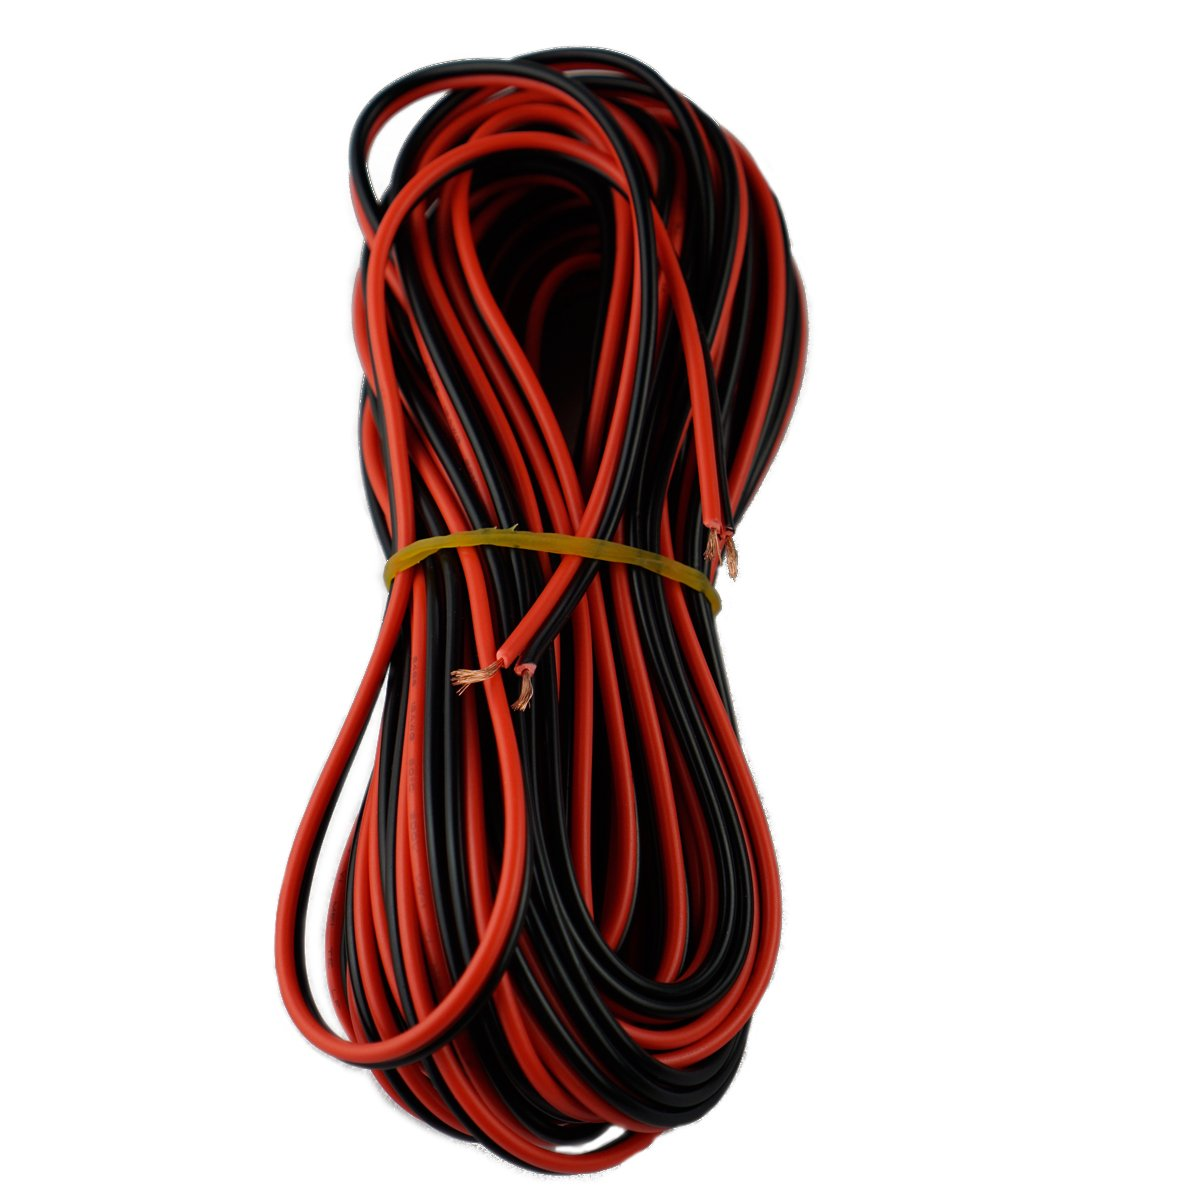 40FT 18 Gauge Single Color LED Strip Extension Cable Wire Cord 18AWG 2Pin 2 Color (40 Feet per Spool) FlyBoy2016 XHQ-61A